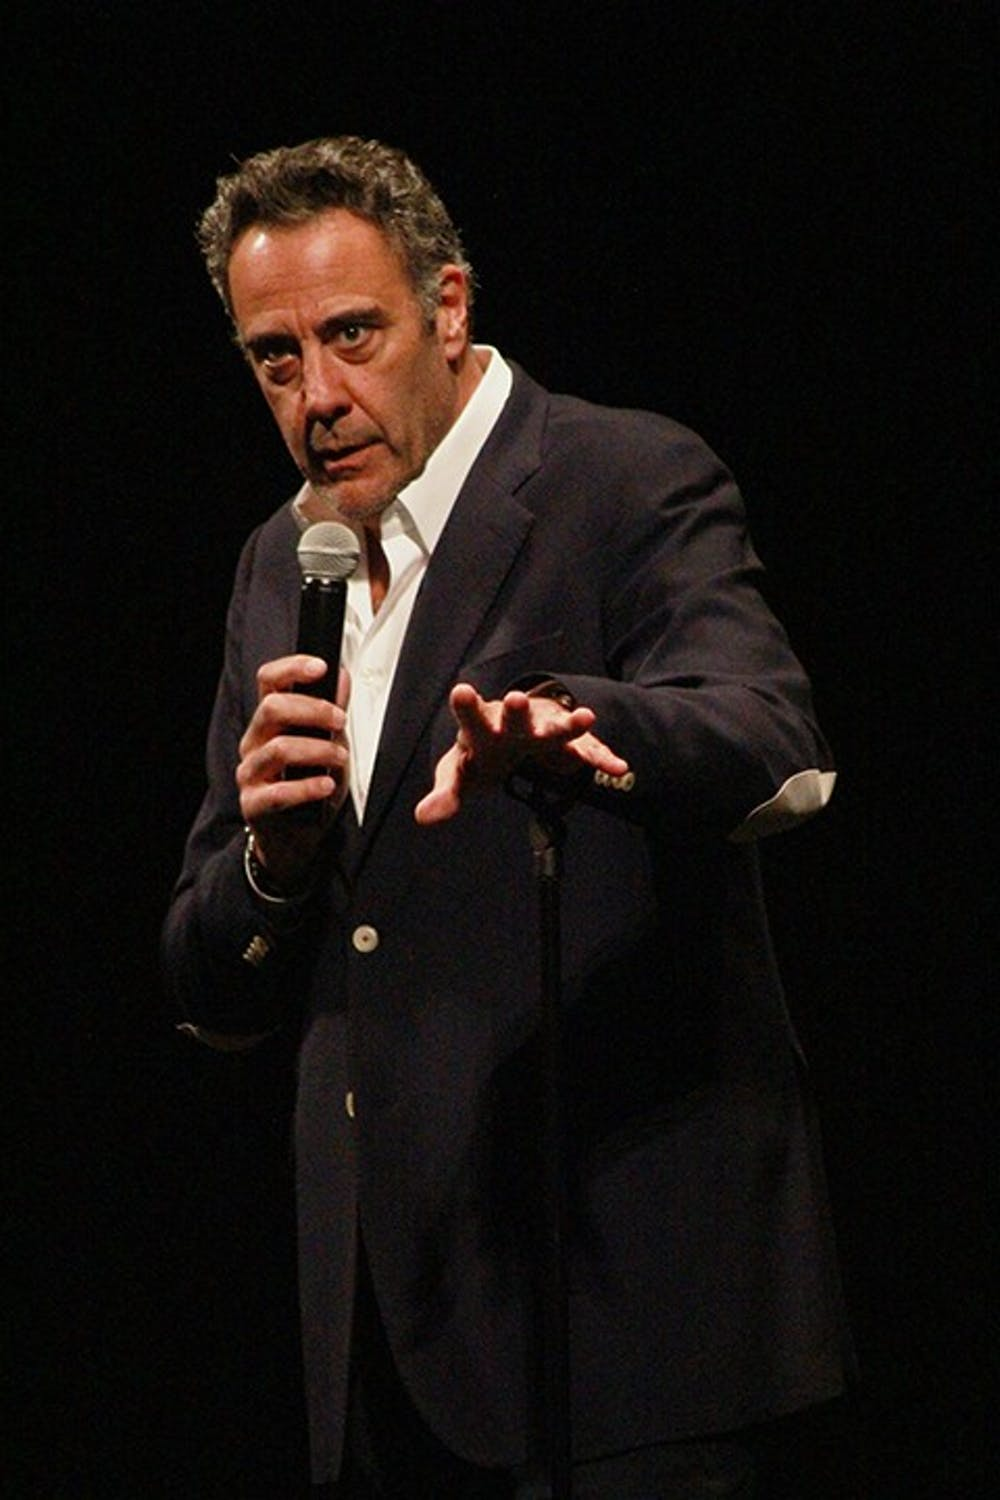 Brad Garrett and Rita Rudner fish for laughter at Luhrs